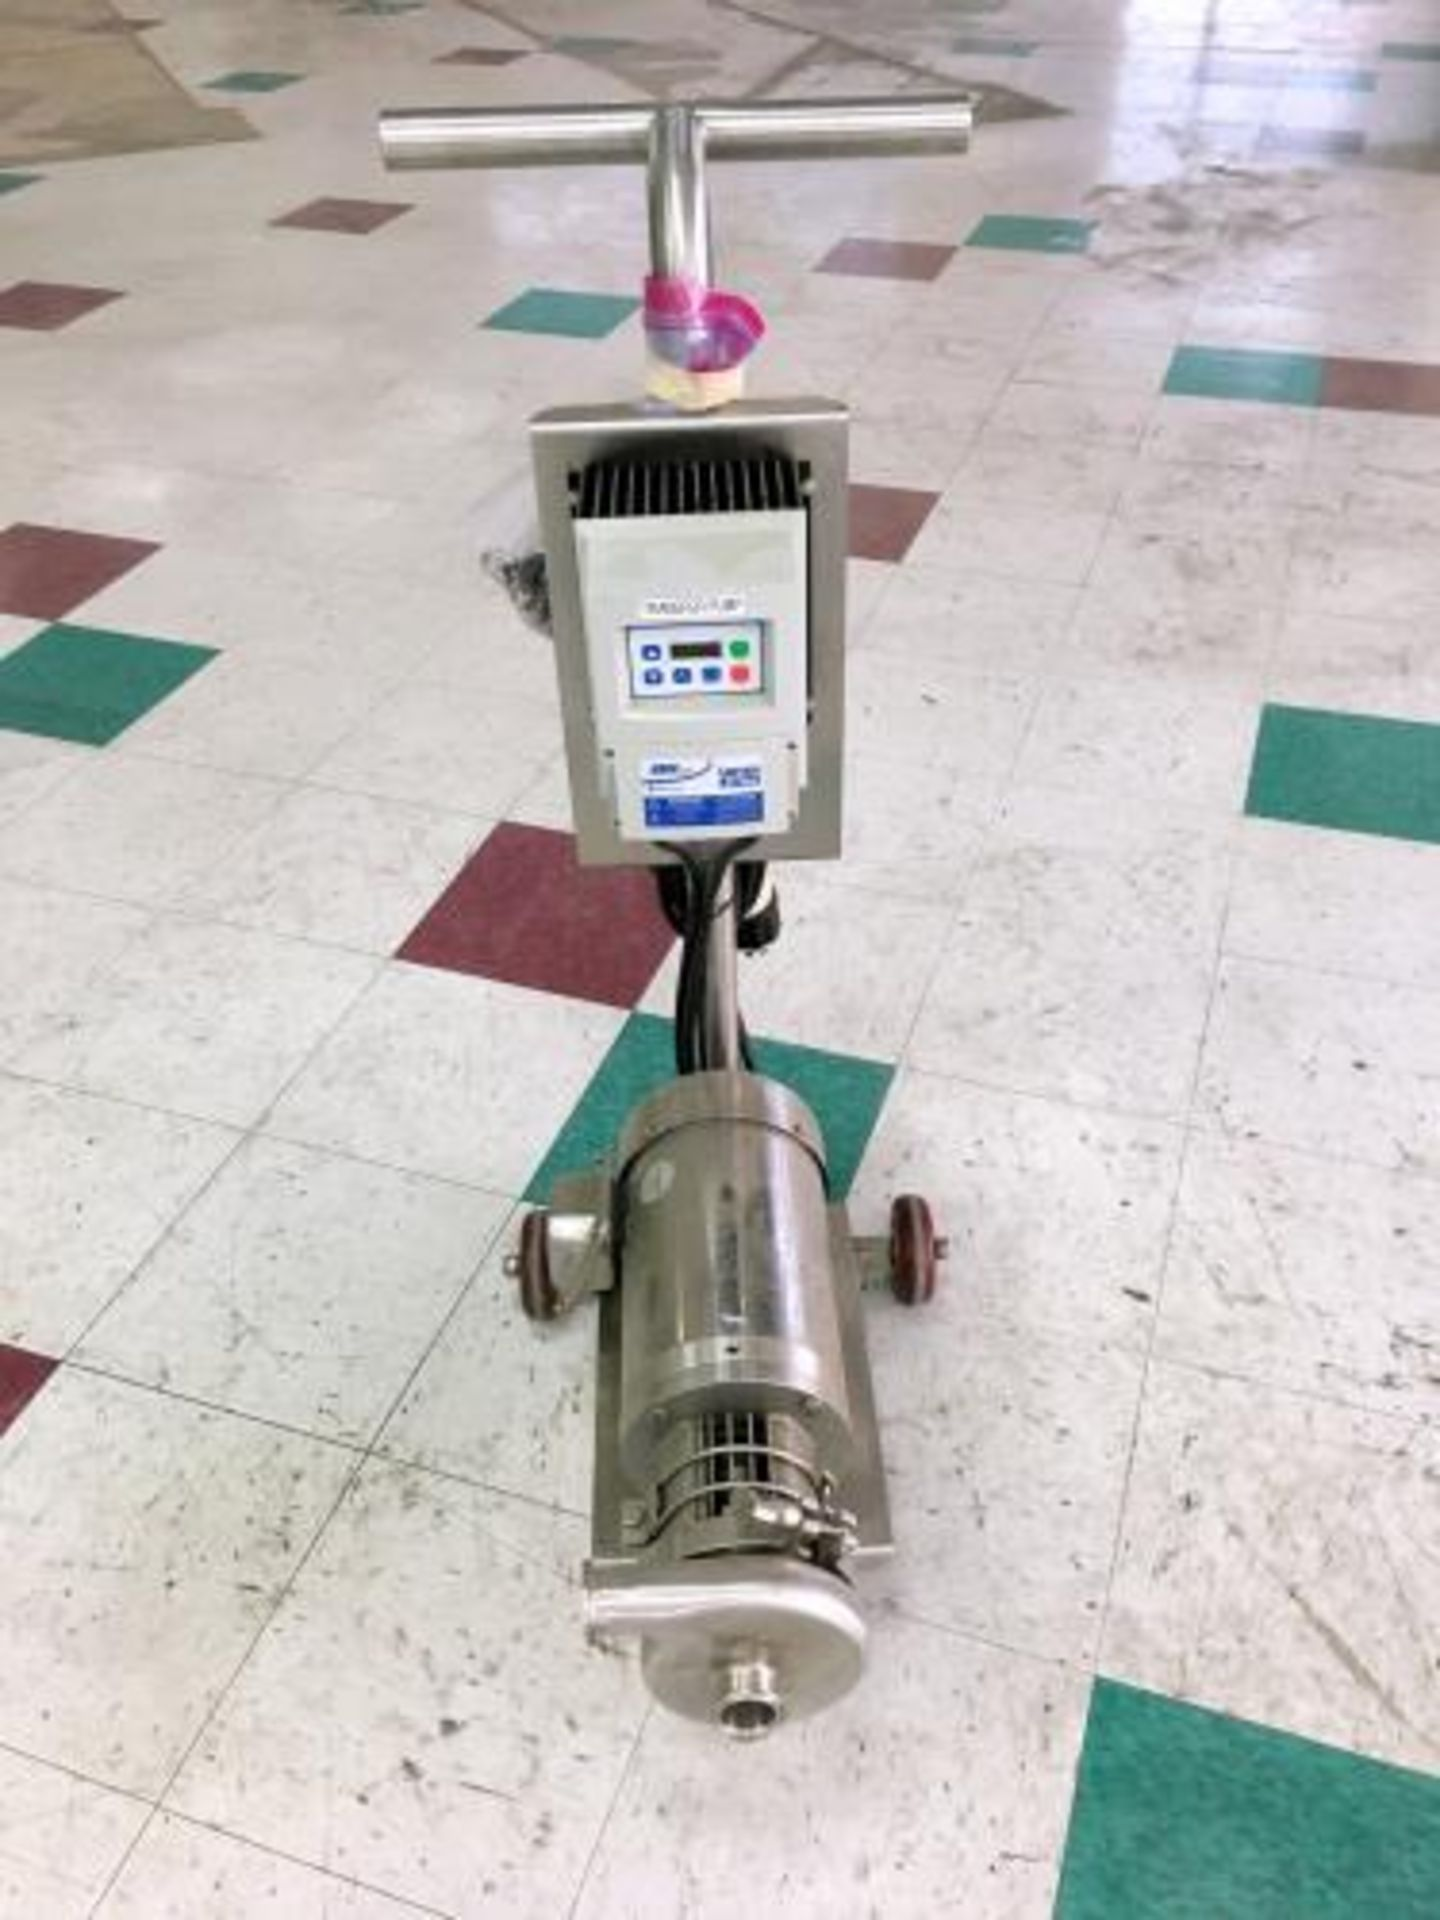 Used-Portable Centrifugal Liquid Transfer Pump. Lenze AC Tech Controller and SS 2 HP Gator Motor. - Image 7 of 7